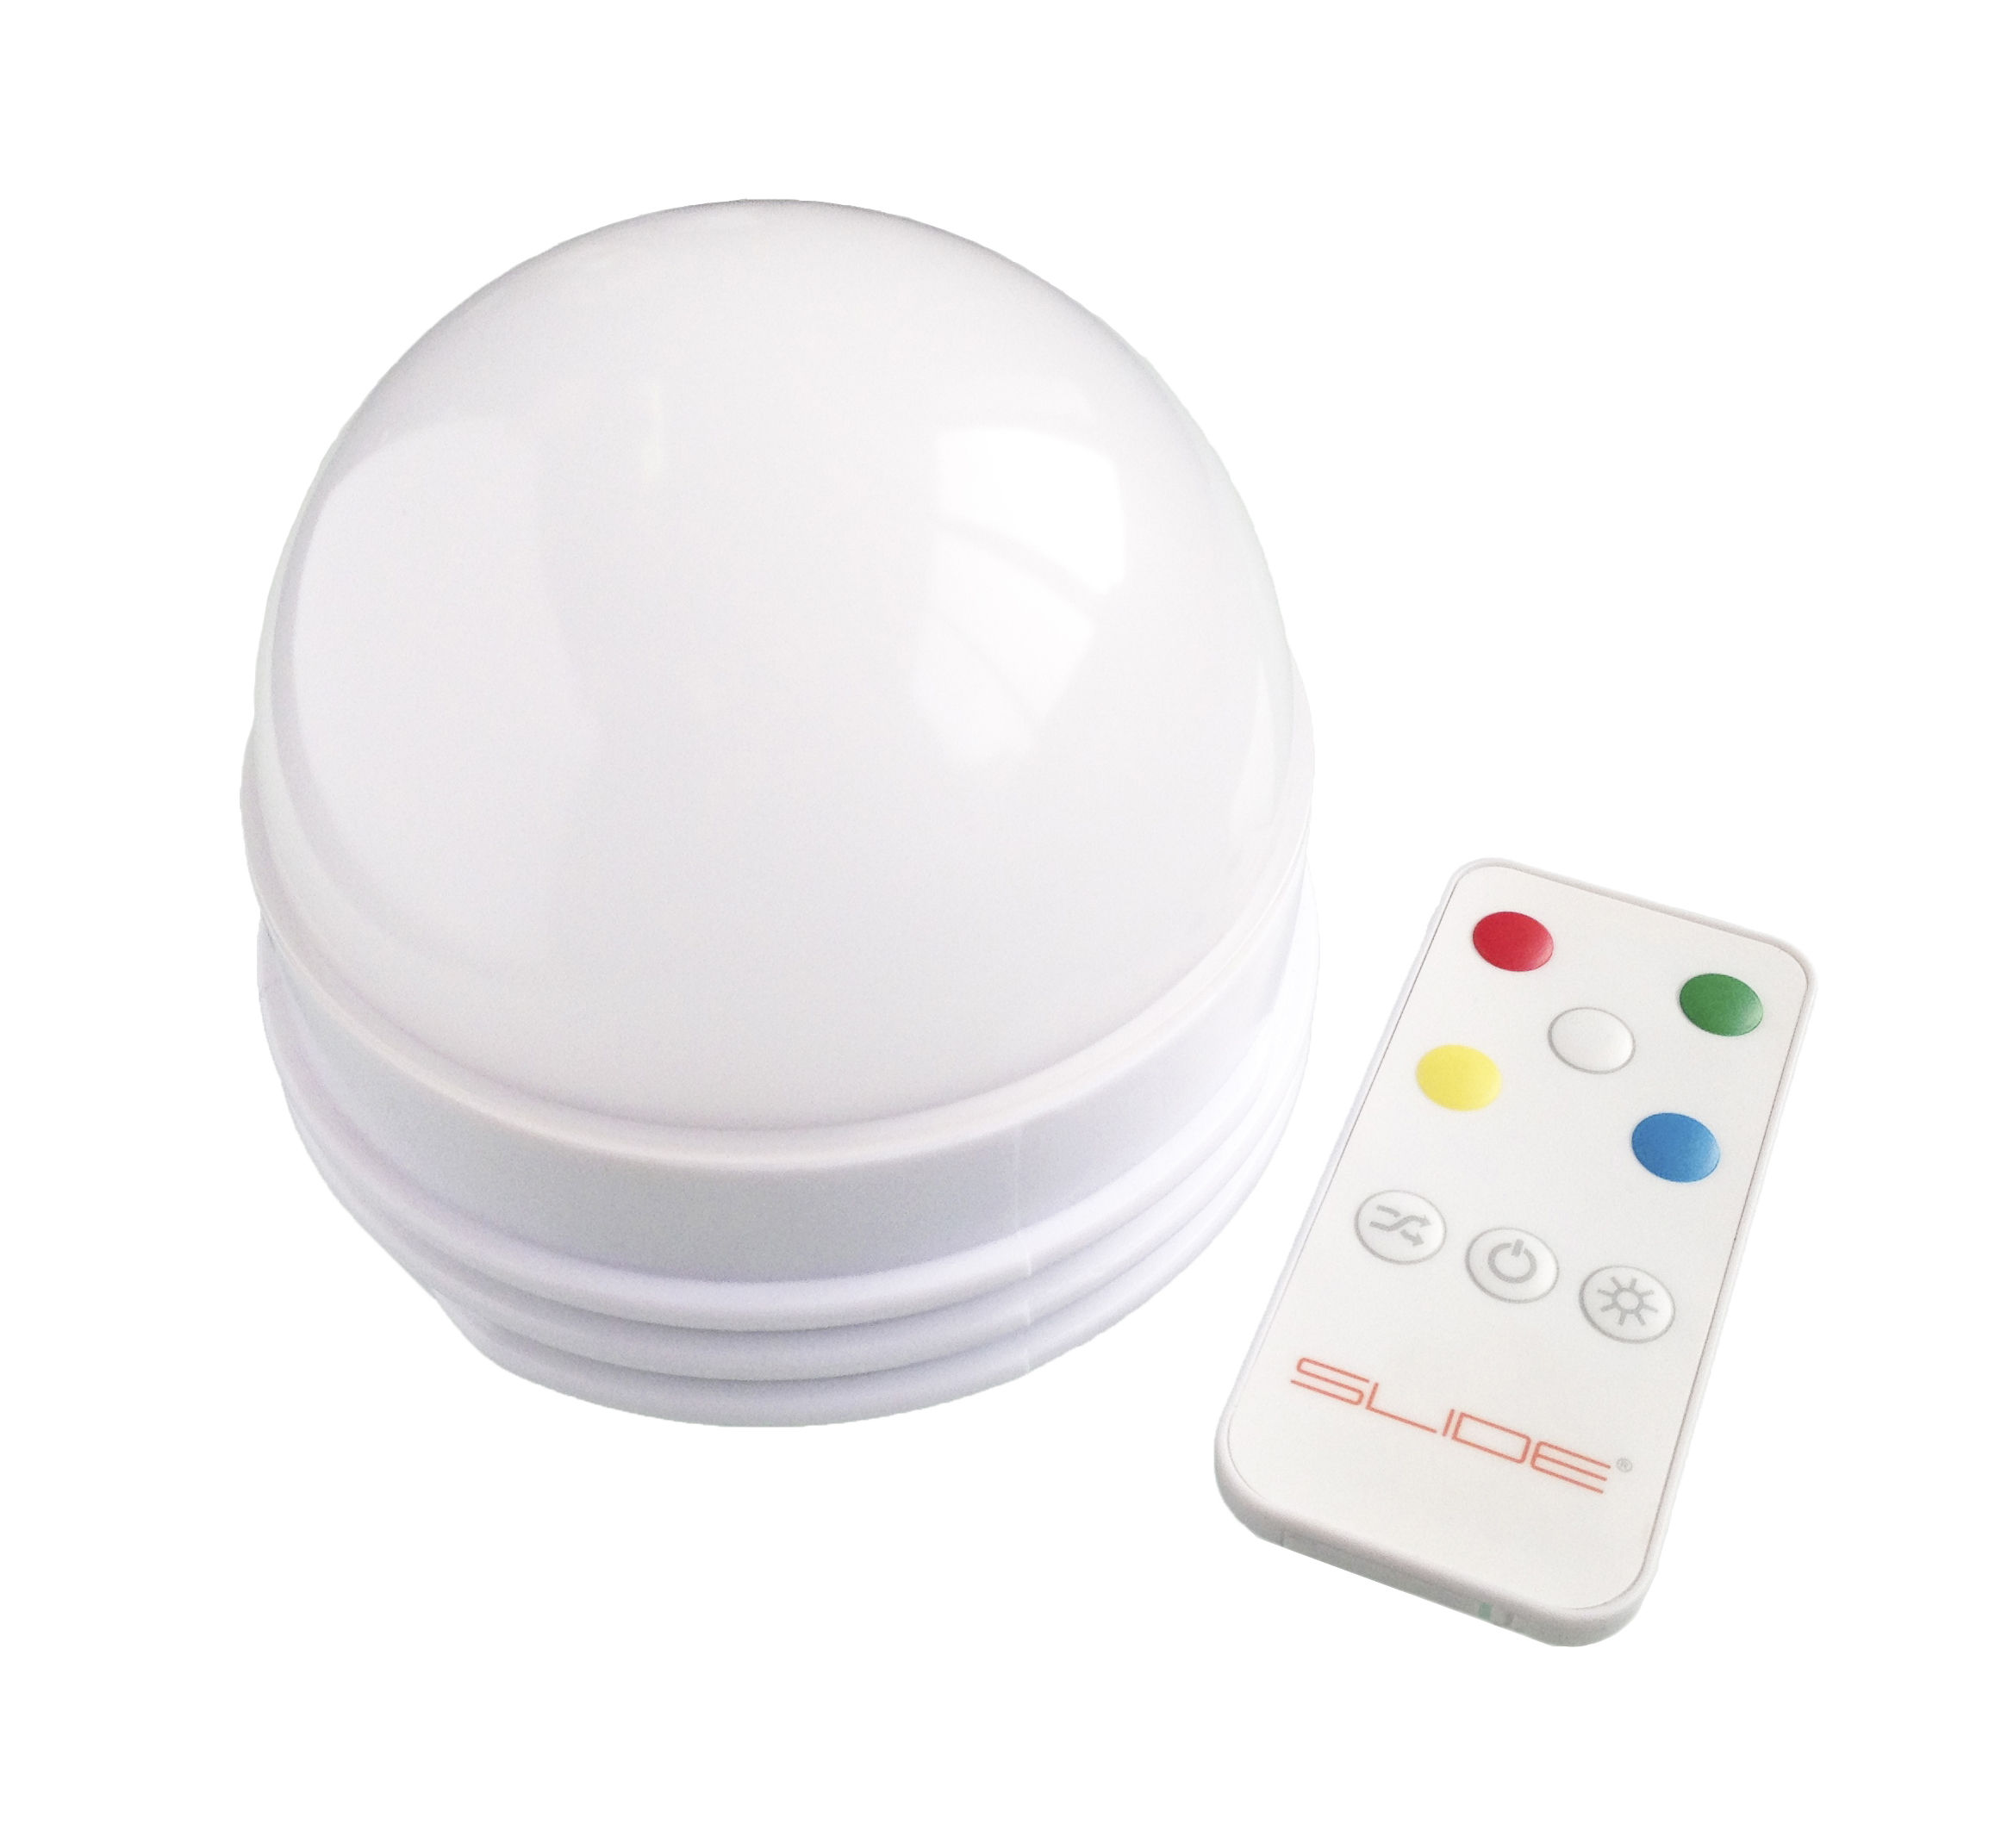 Lighting - Light Bulb & Accessories - Candy Light RGB LED kit by Slide - Multicolored light - Plastic